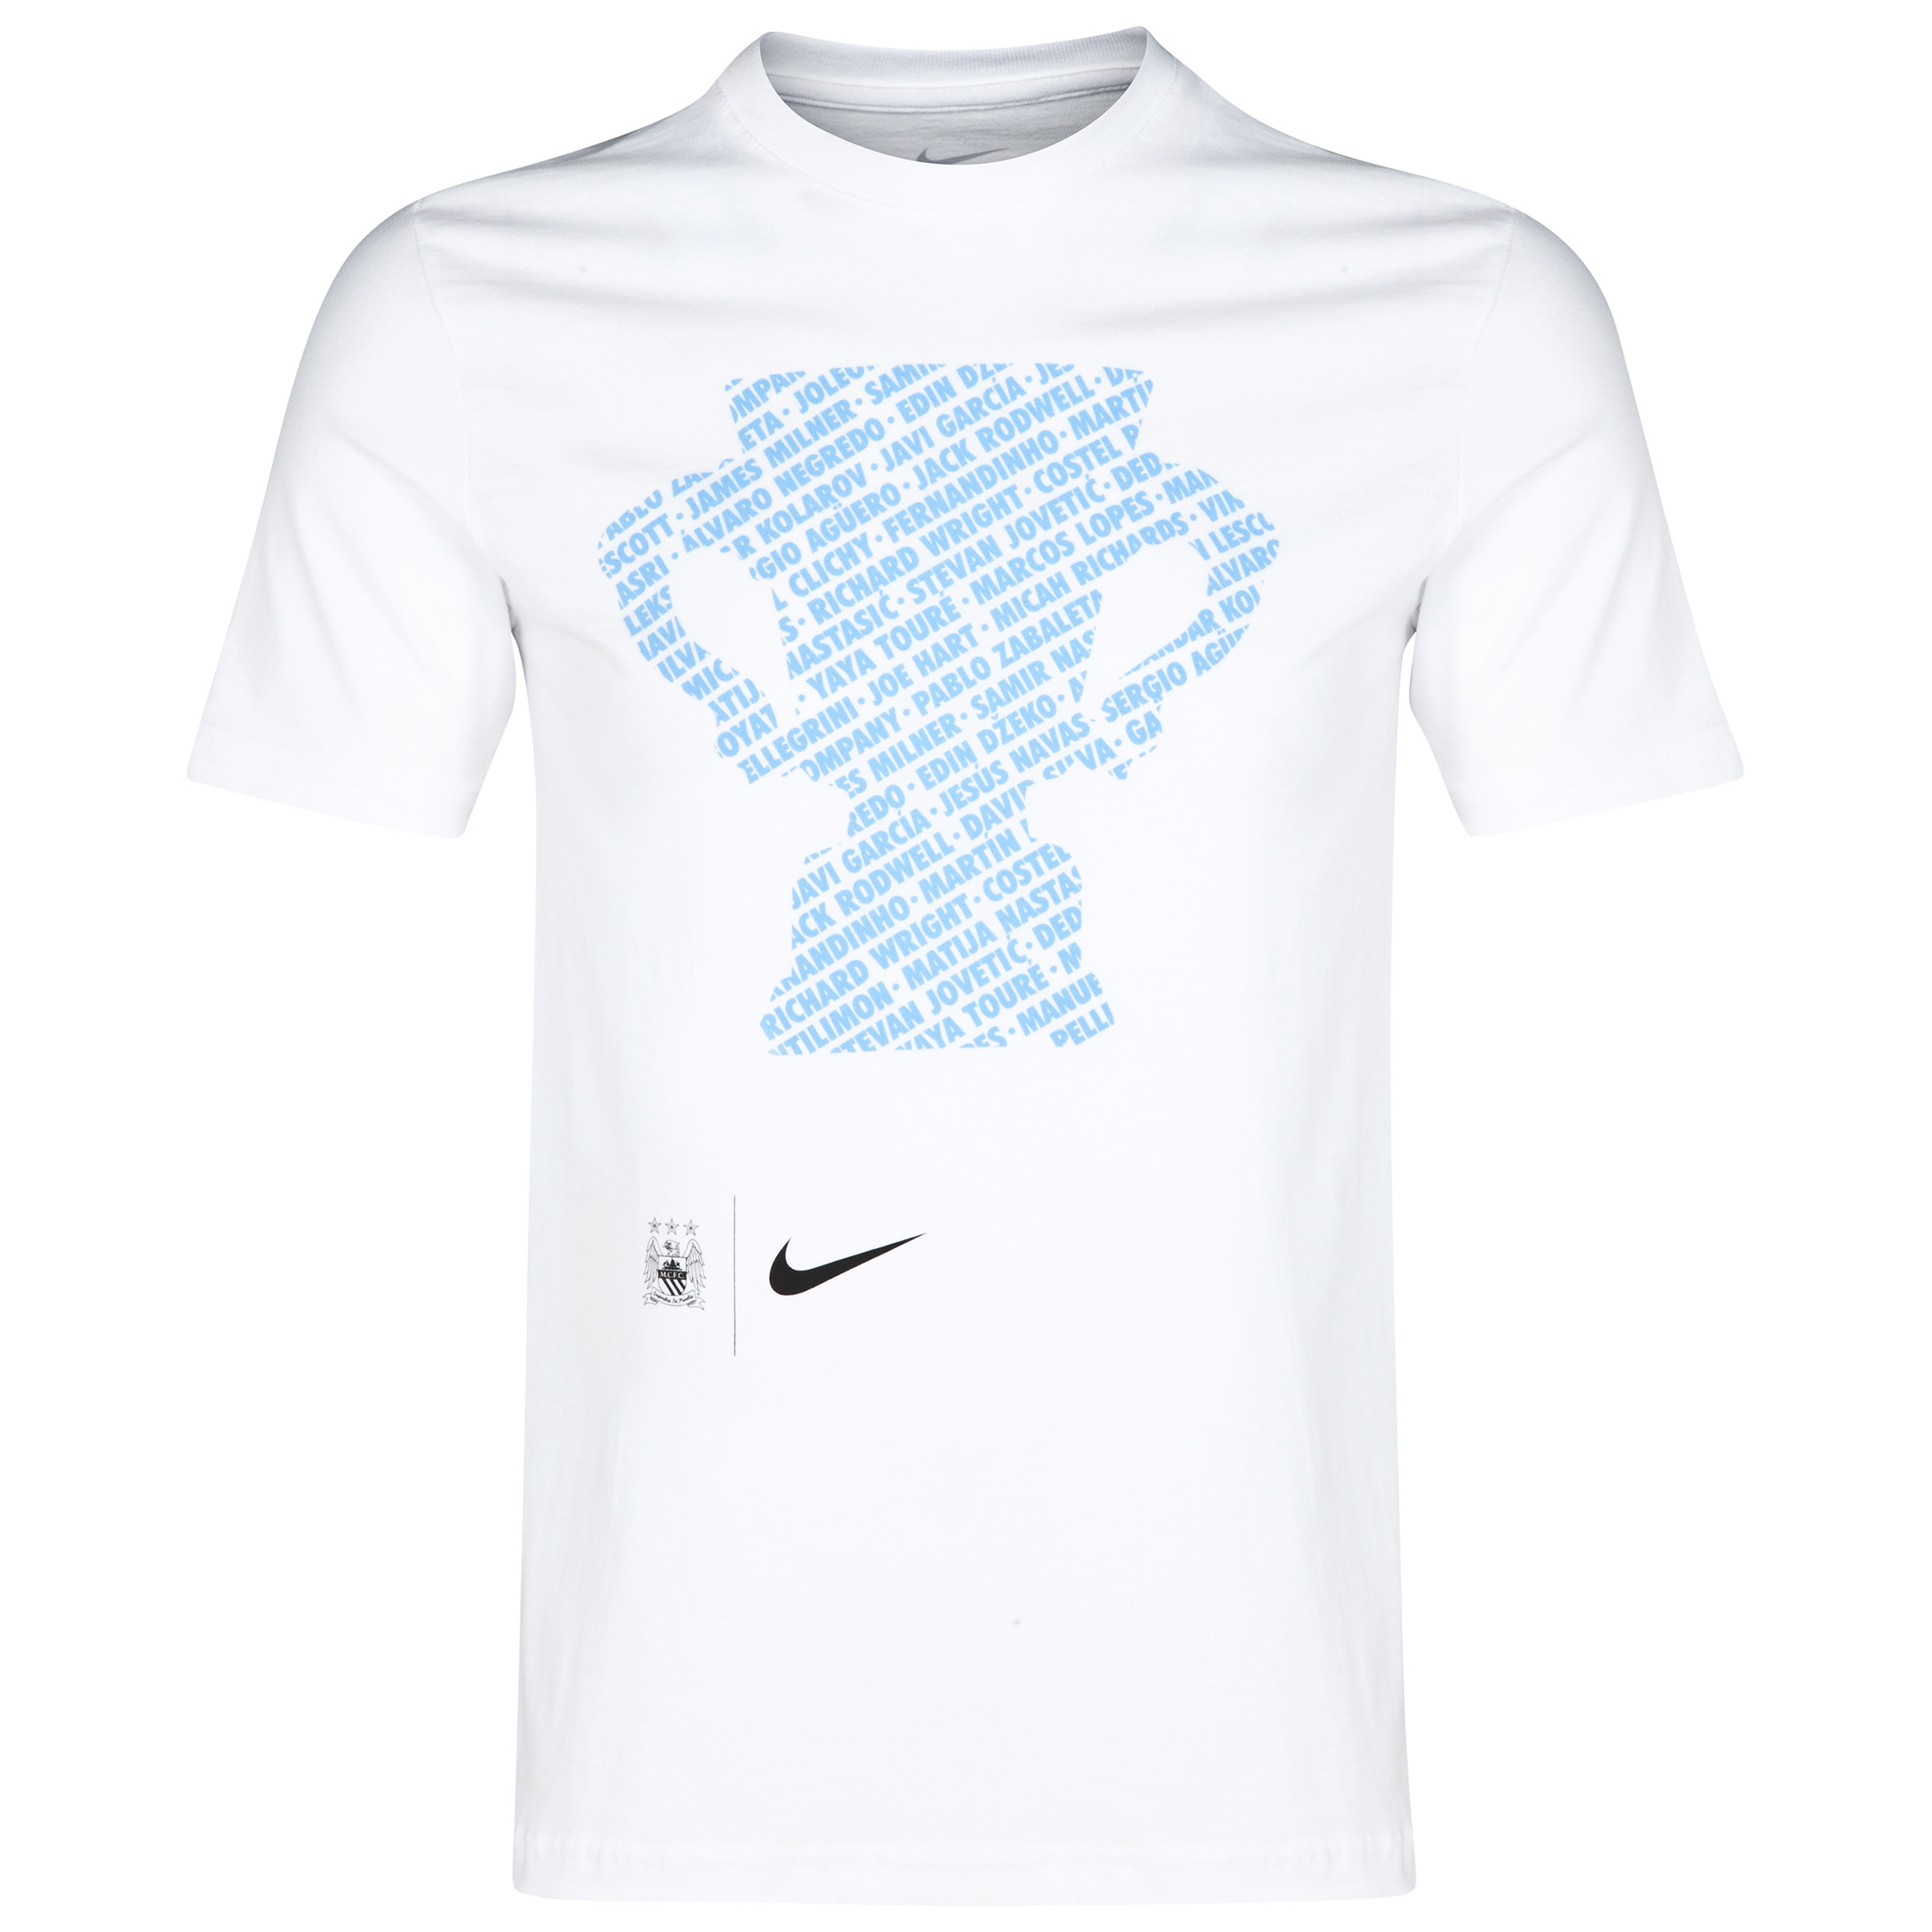 Manchester City Capital One Cup Winners T-Shirt White